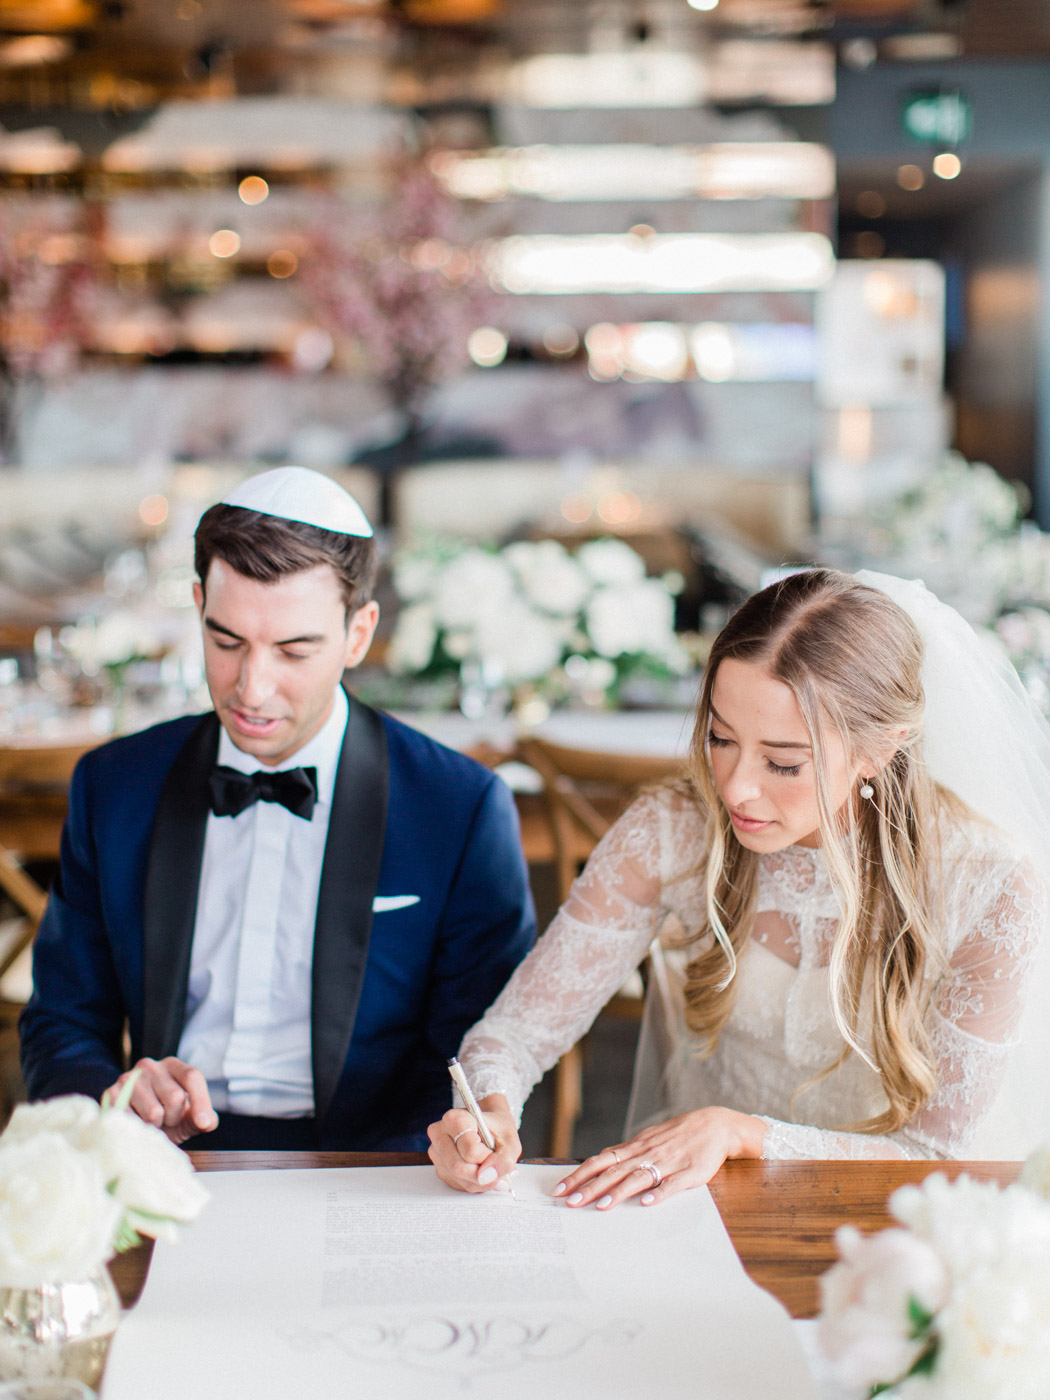 -Bride and groom signing the ketuba at their traditional jewish wedding ceremony at an intimate restaurant venue in Toronto.  Captured by Toronto wedding photographer Corynn Fowler Photography.